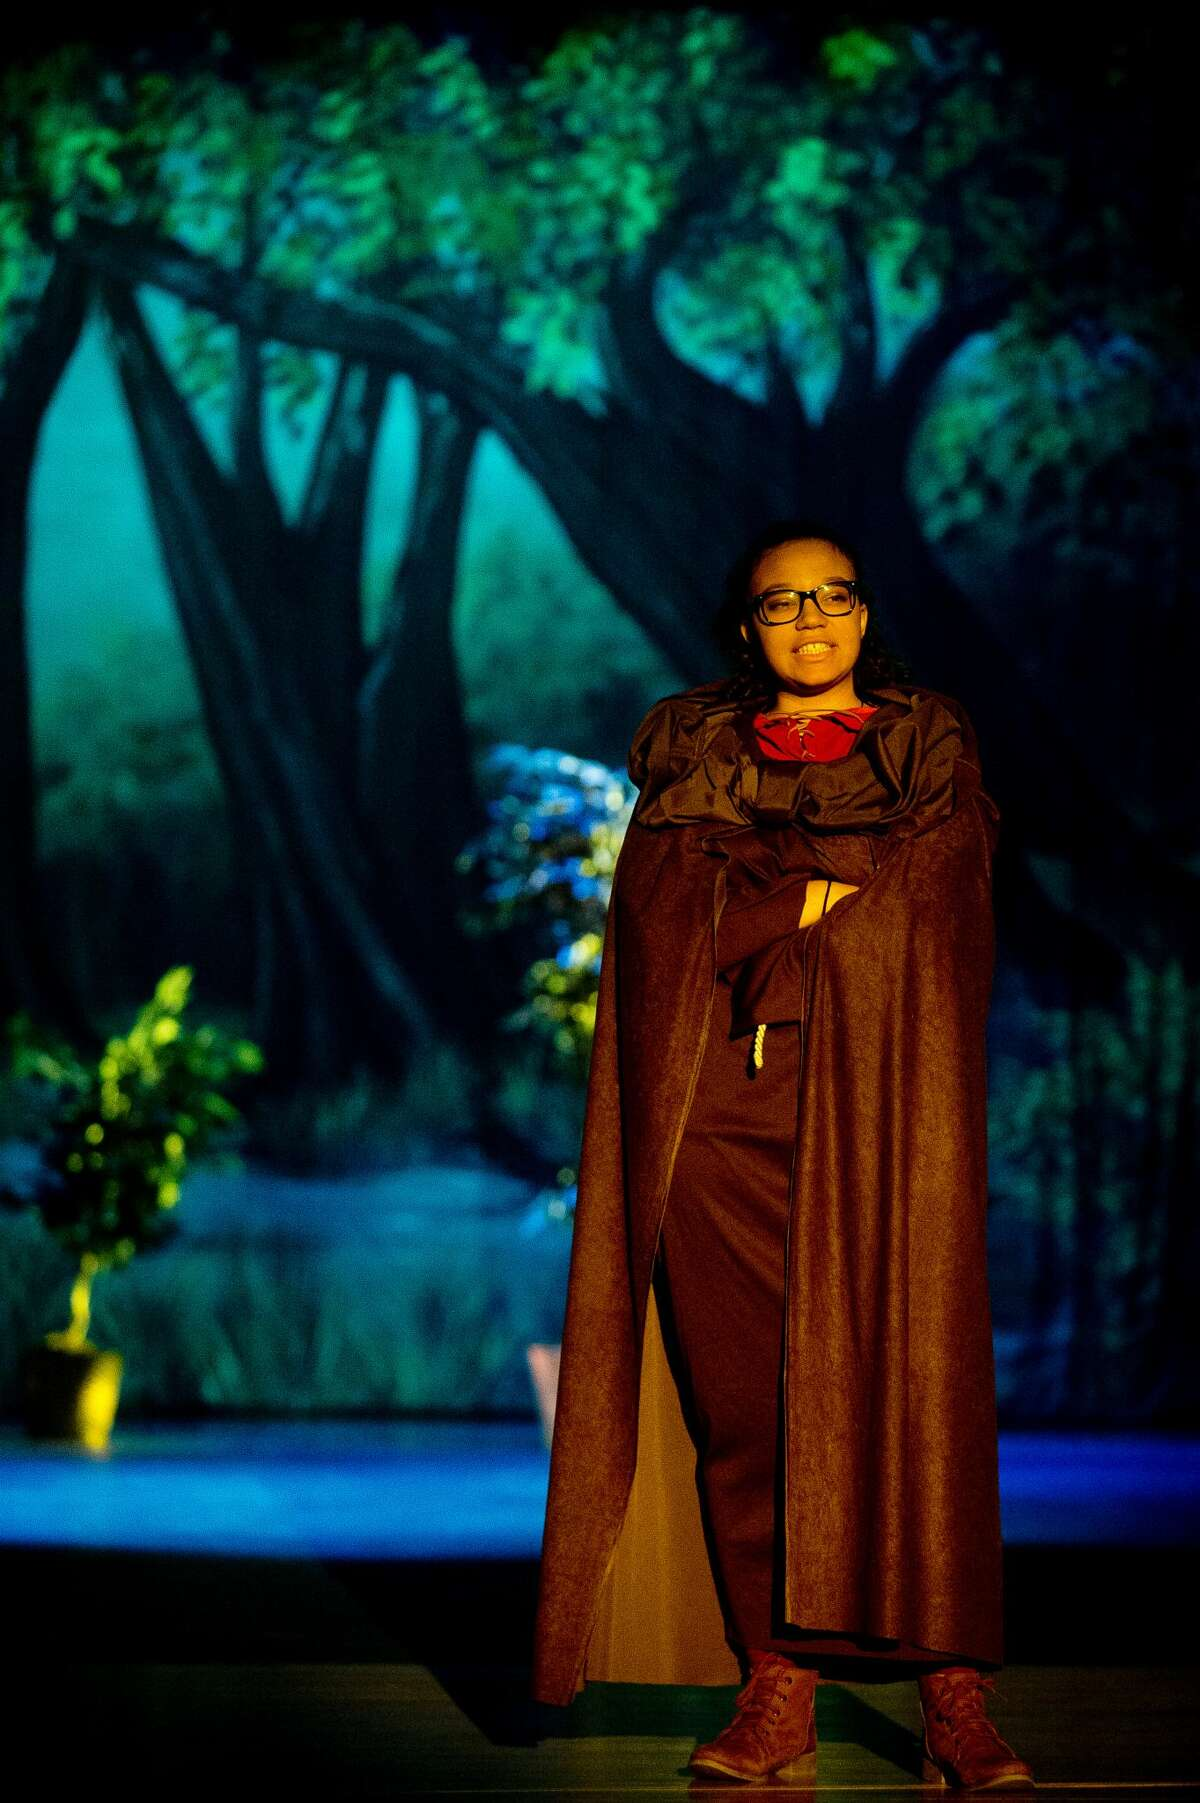 Lila Granroth, playing the role of Friar Tuck, acts out a scene during a dress rehearsal on Monday, Nov. 6, 2017 for Bullock Creek High School's production of Robin Hood at Bullock Creek High School. (Katy Kildee/kkildee@mdn.net)